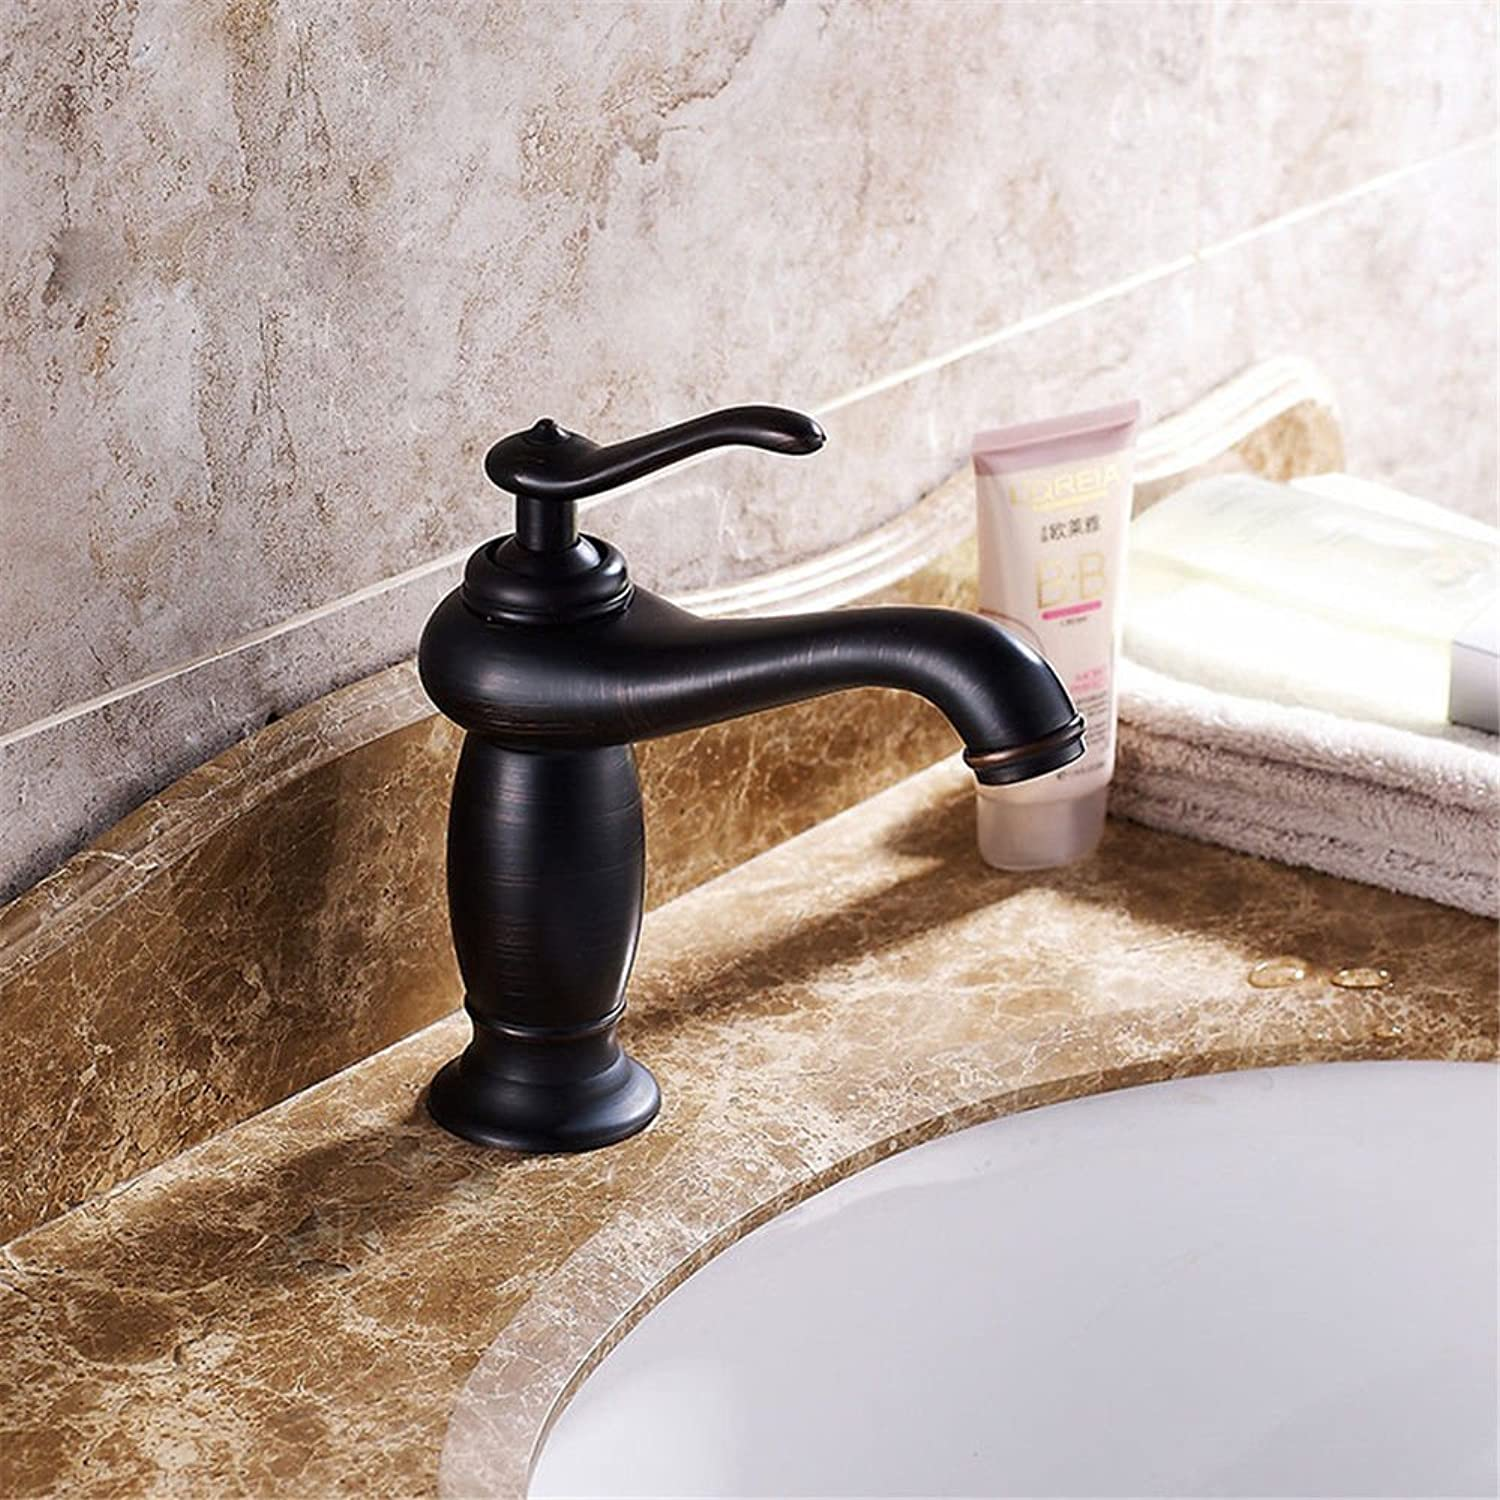 FERZA home Sink Mixer Tap Bathroom Kitchen Basin Tap Leakproof Save Water Copper colord Bamboo And Cold Water Sink